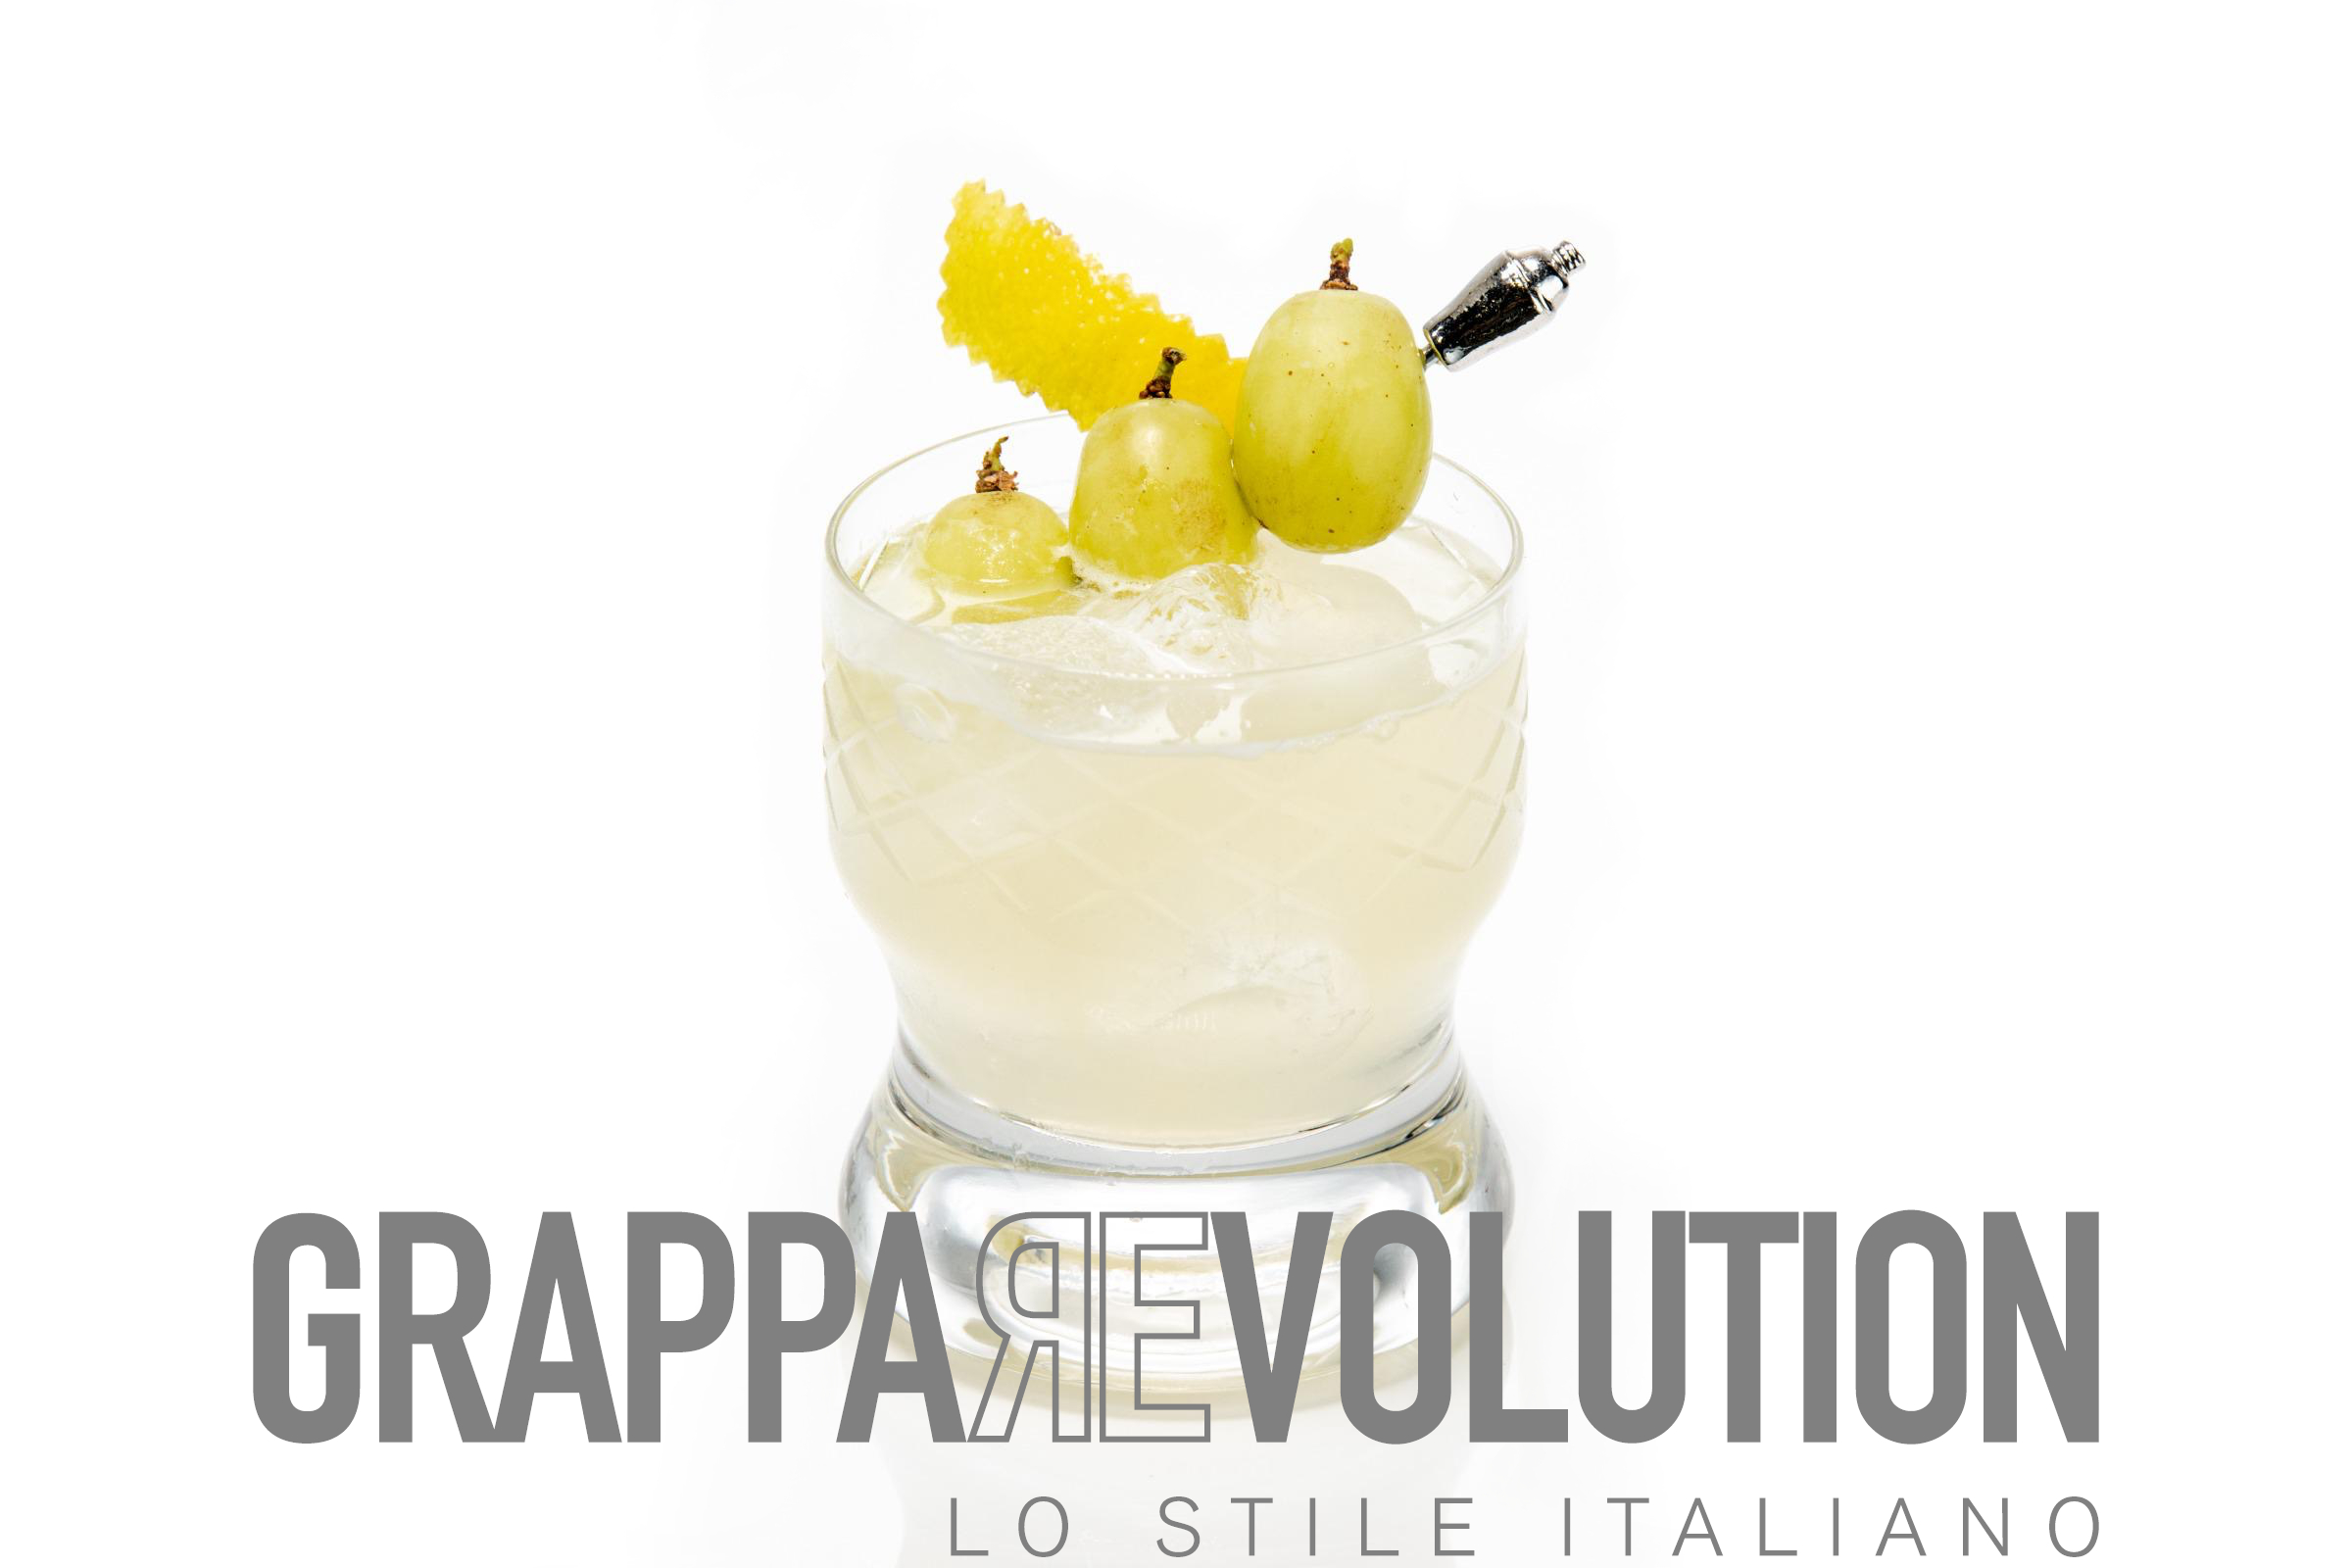 VE.N.TO il primo Cocktail IBA a base grappa